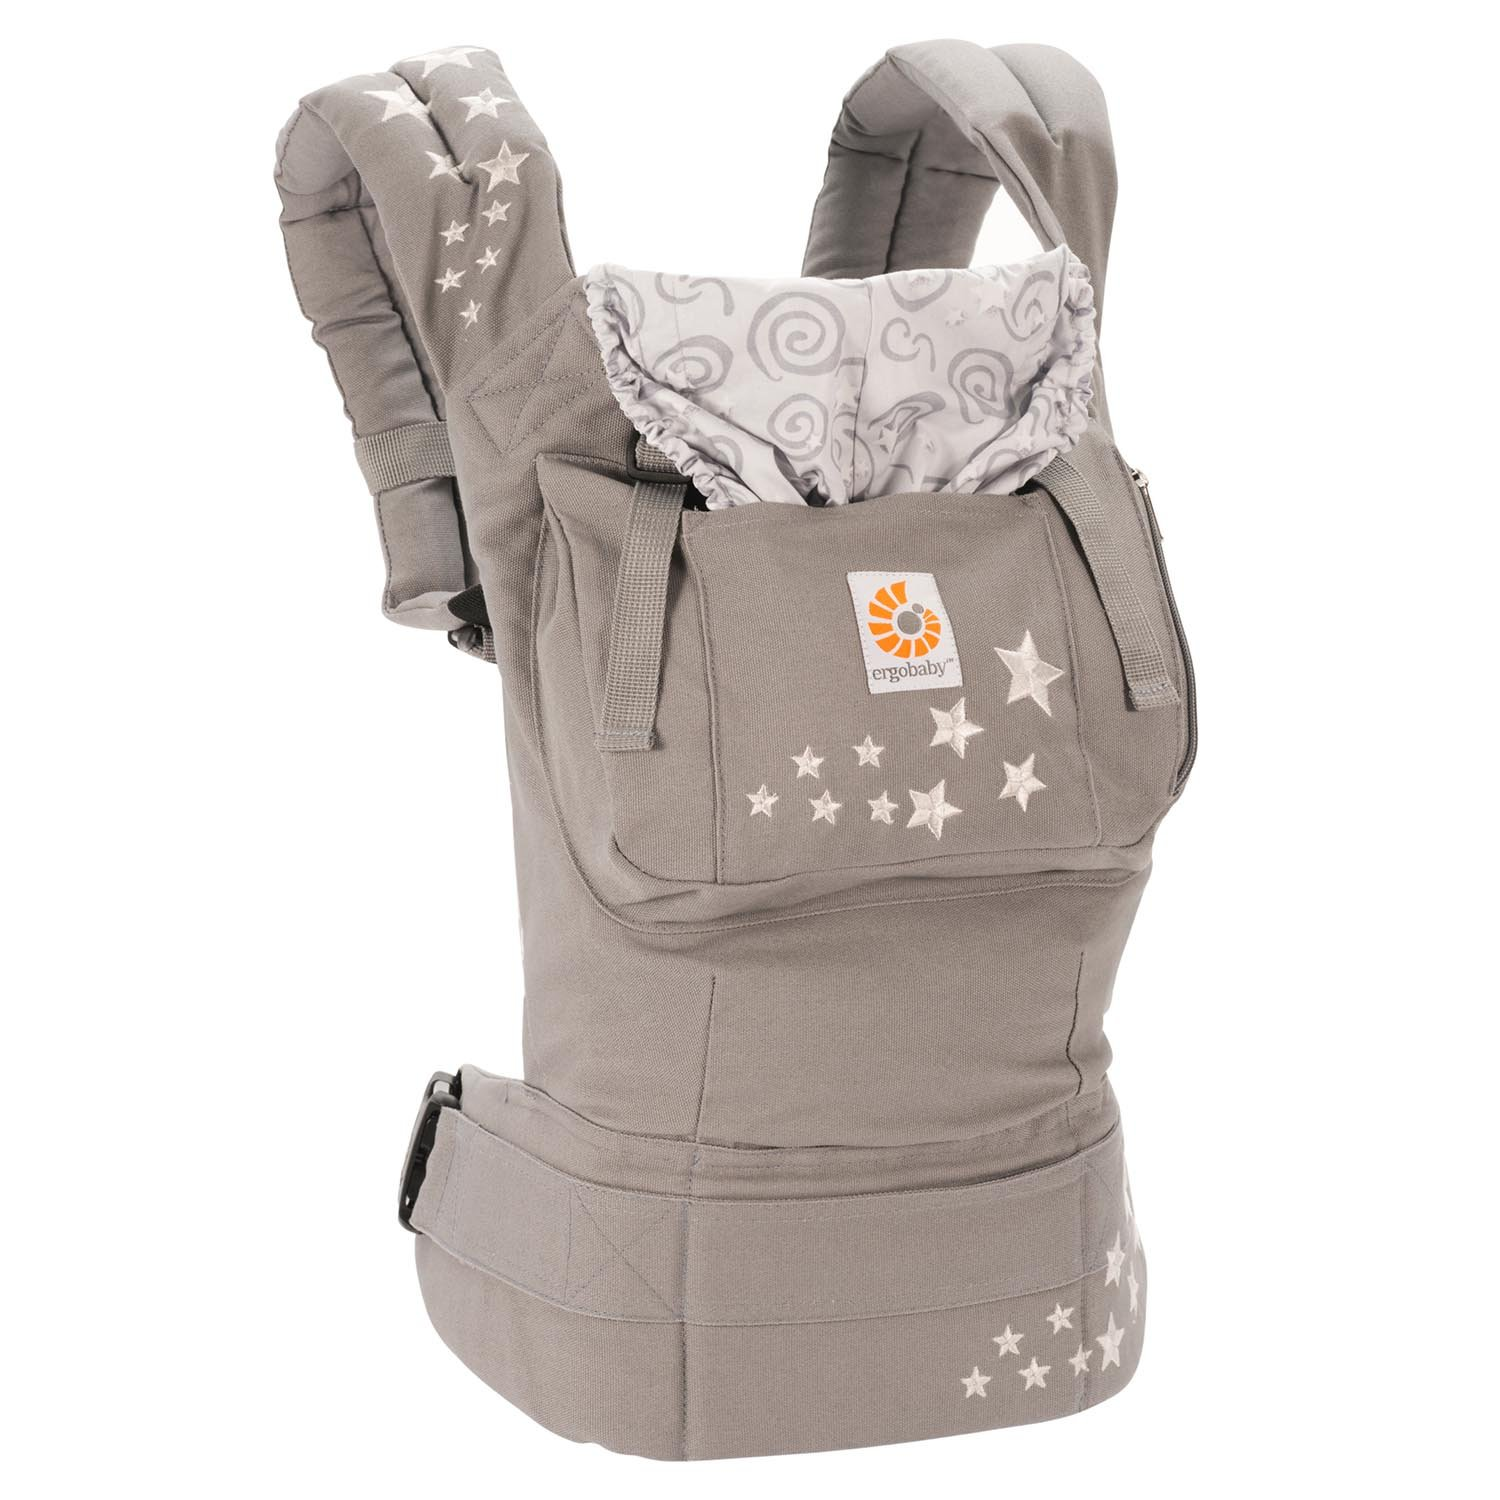 Ergobaby Carrier Original 3 Position Baby Carrier With Lumbar Support And Storage Pocket Galaxy Grey